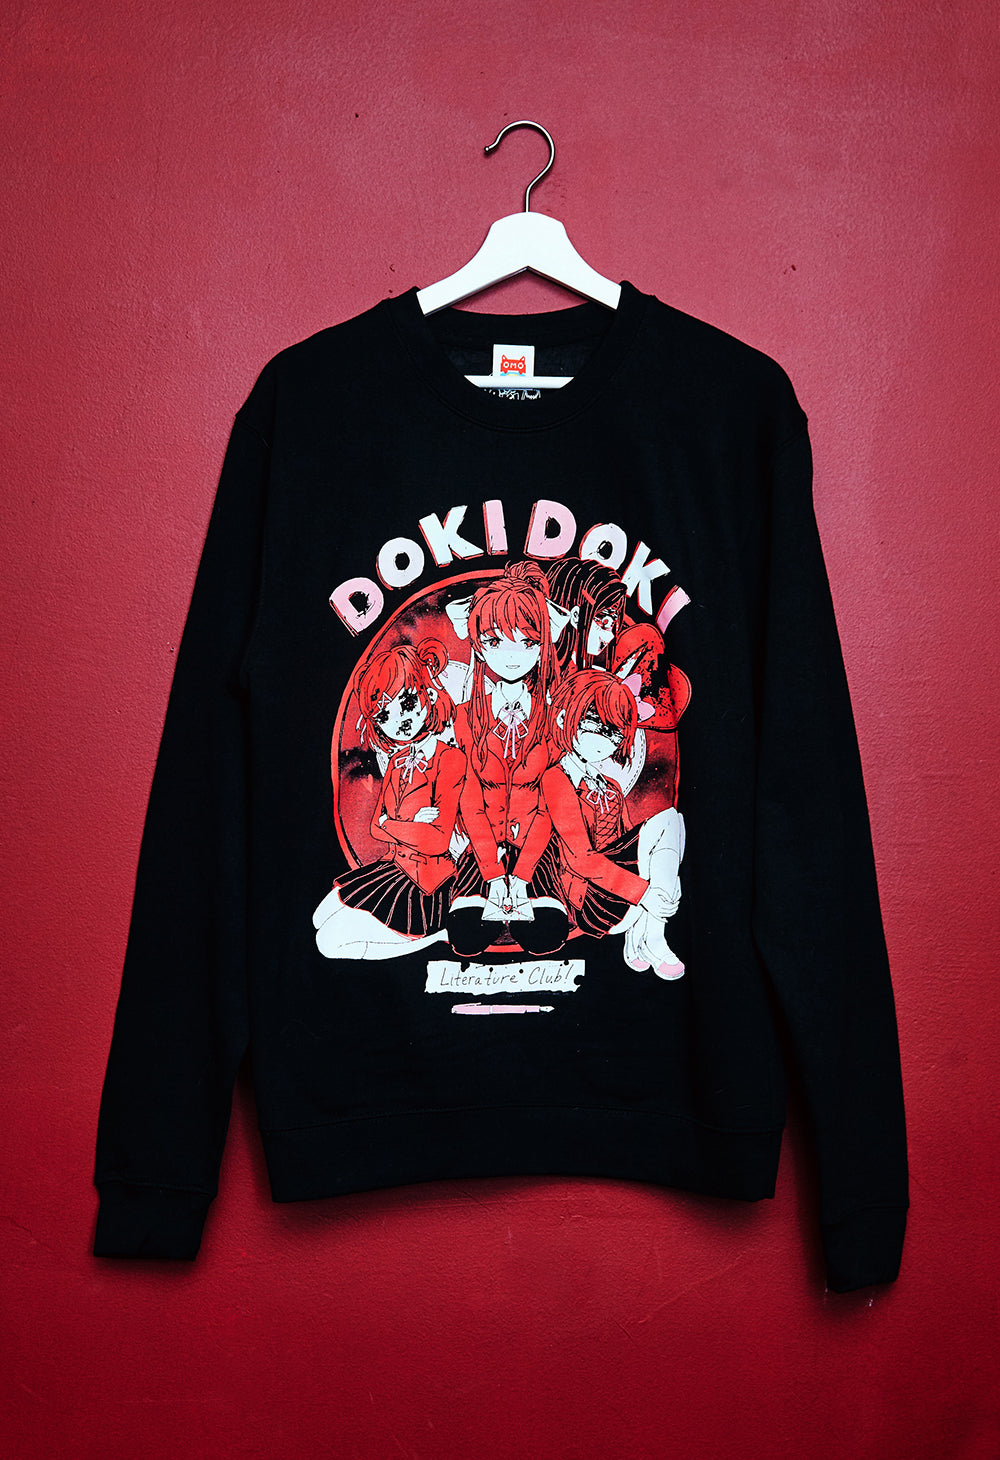 DOKI DOKI Black Sweater